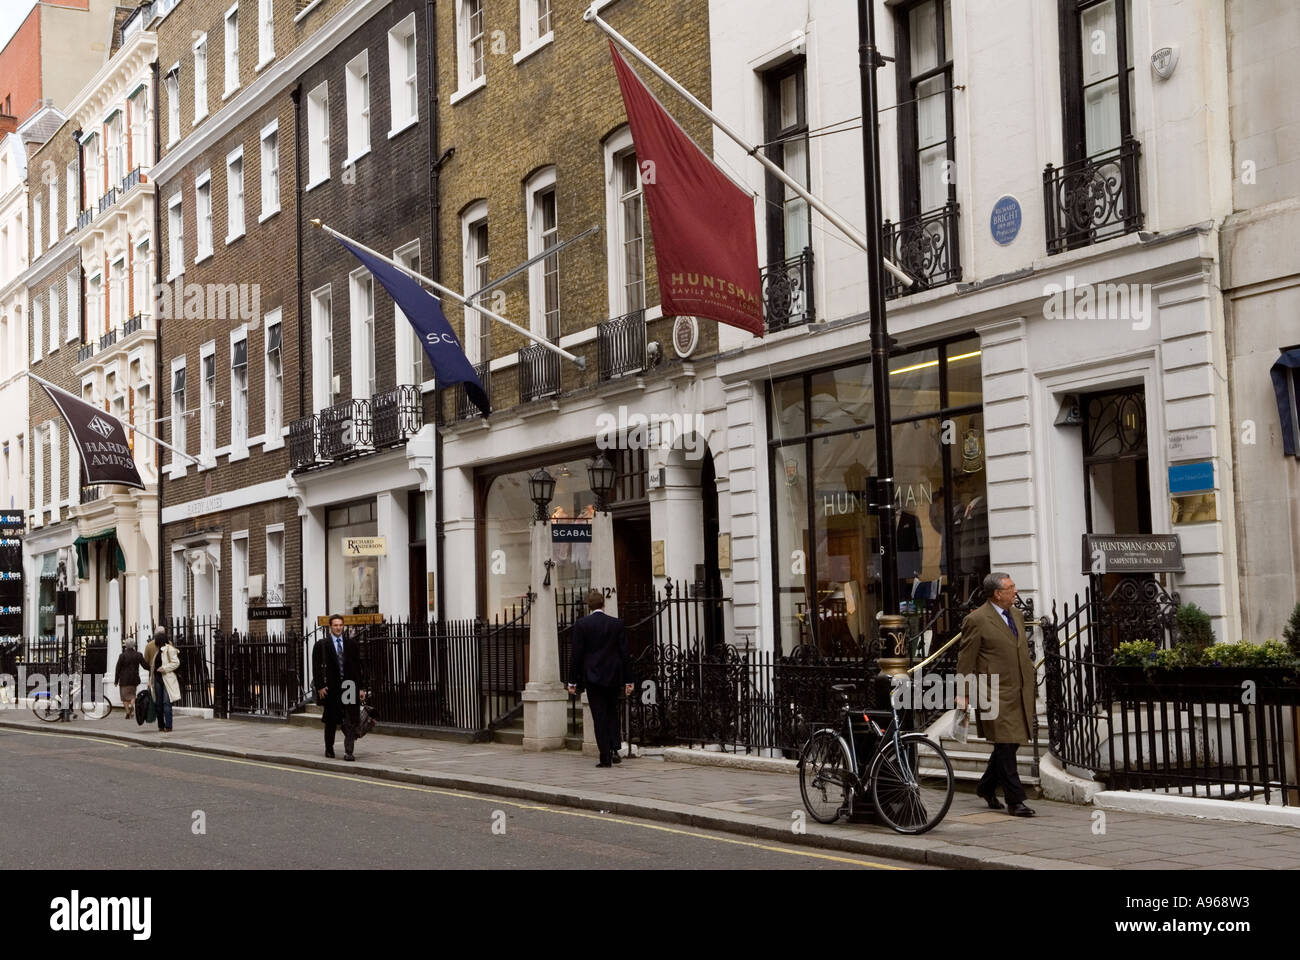 Huntsman Clothing London